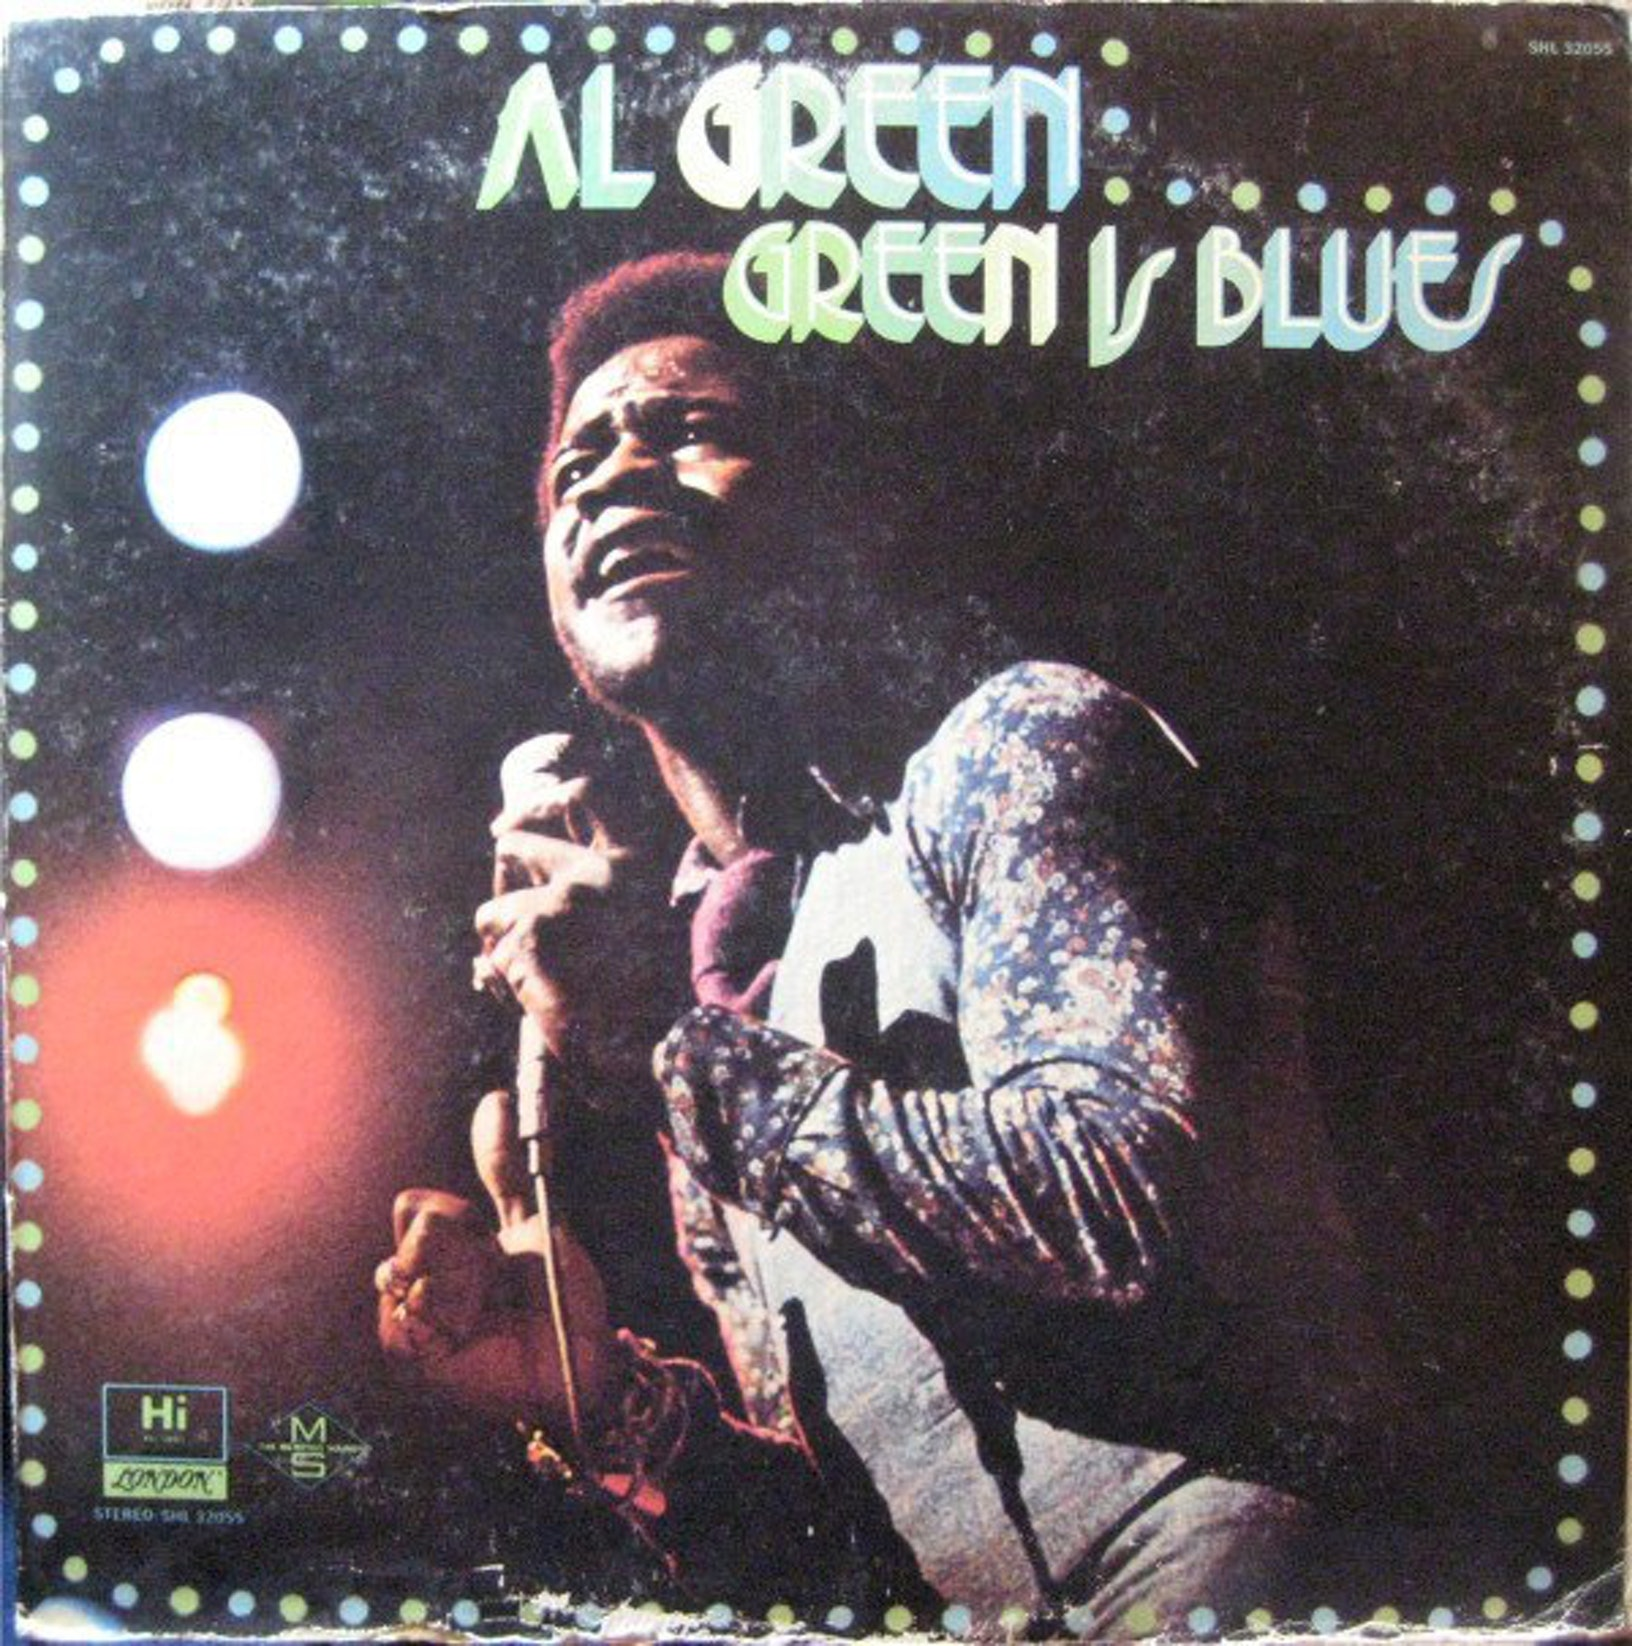 The 10 Best Al Green Albums To Own On Vinyl — Vinyl Me, Please